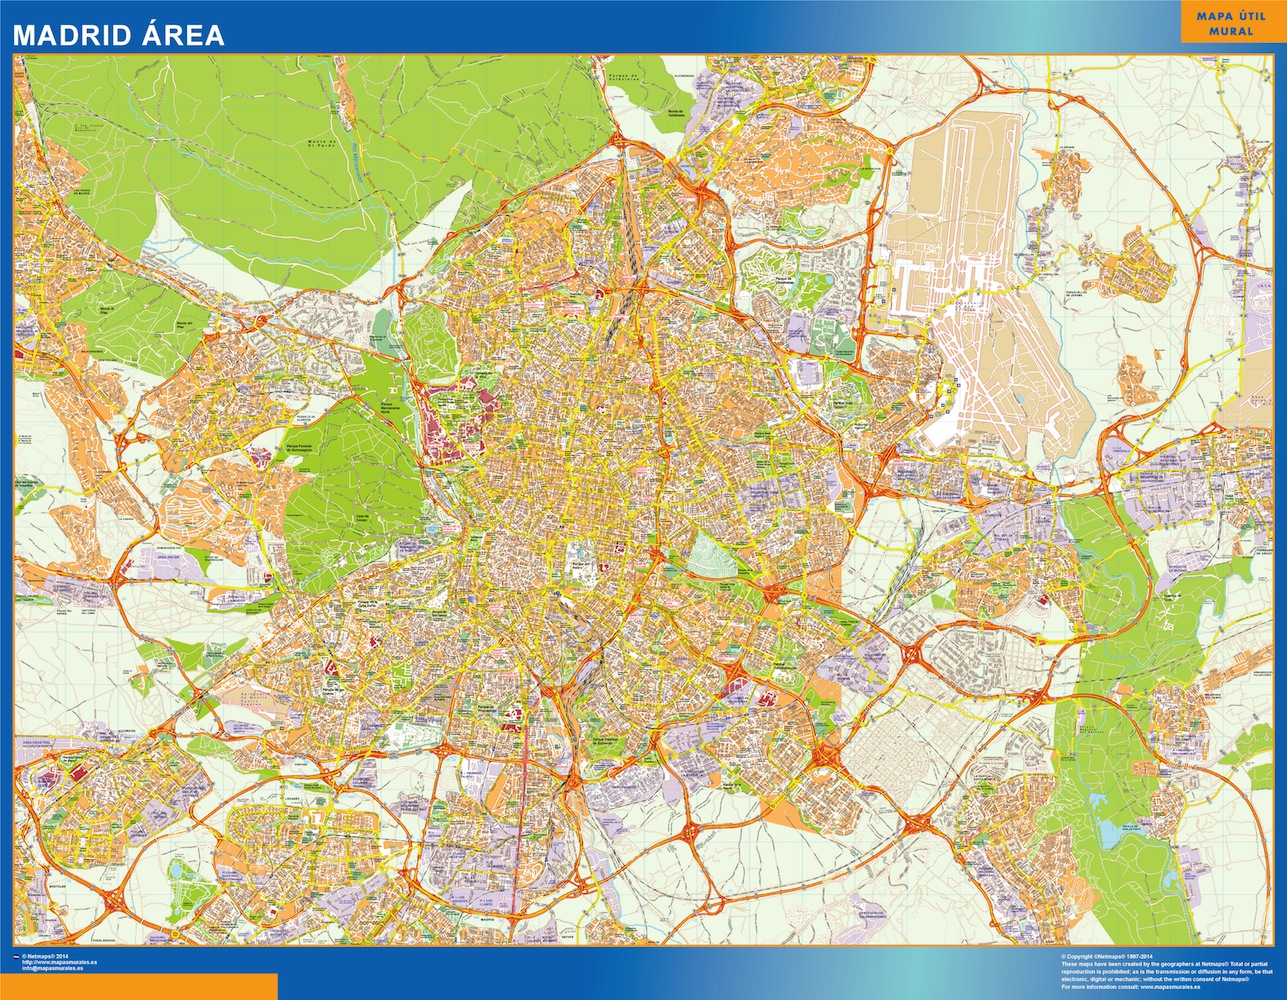 madrid area street map